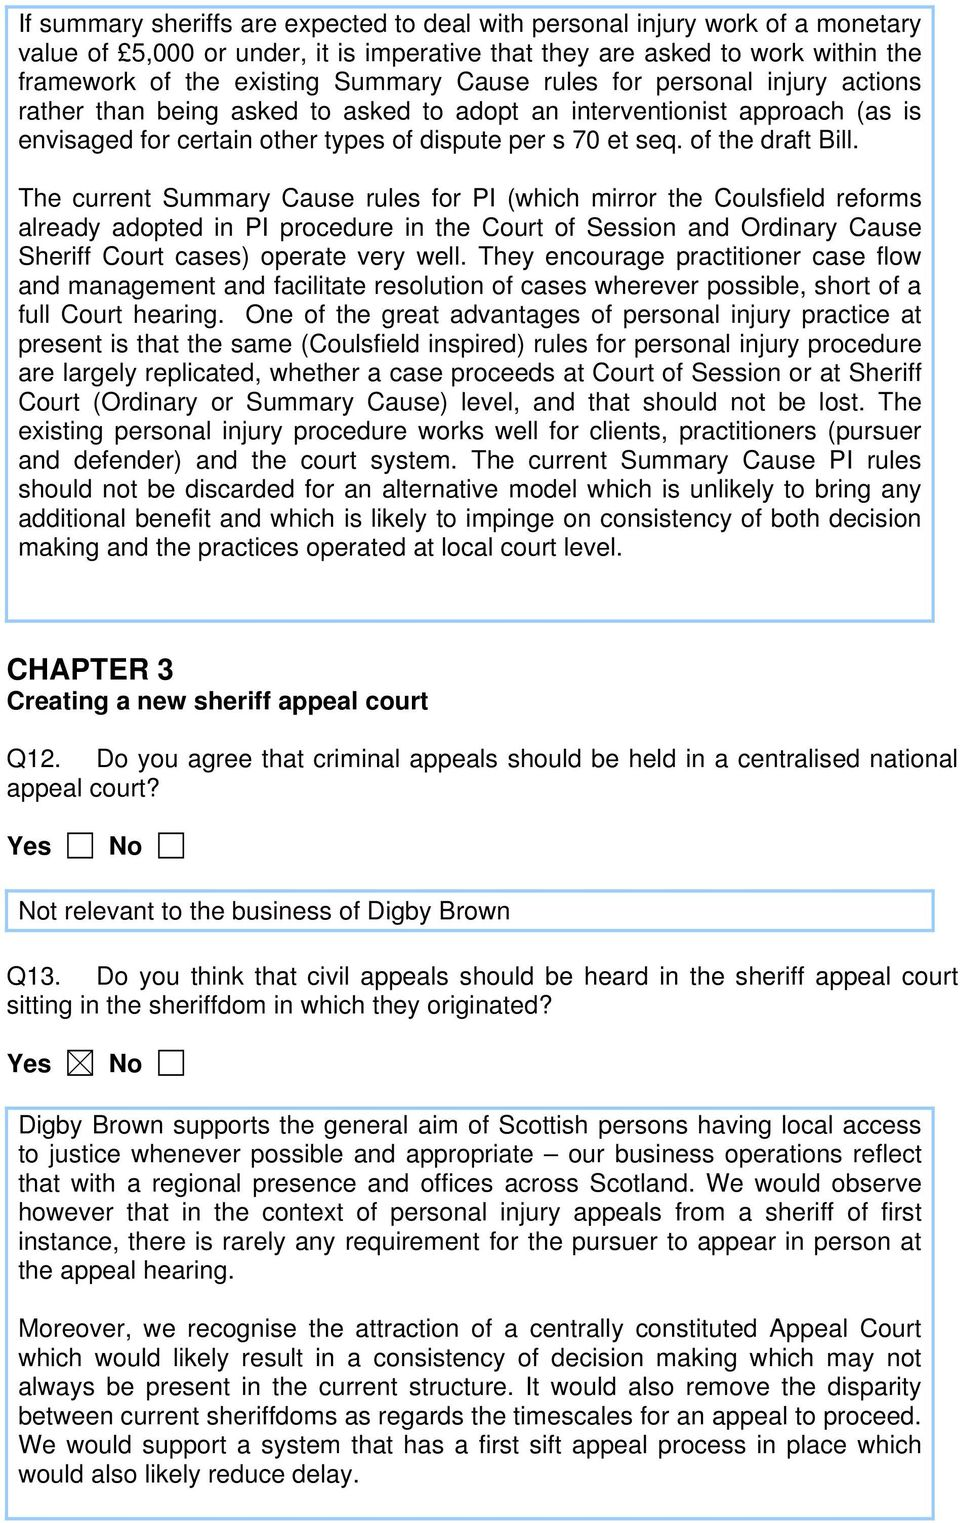 The current Summary Cause rules for PI (which mirror the Coulsfield reforms already adopted in PI procedure in the Court of Session and Ordinary Cause Sheriff Court cases) operate very well.